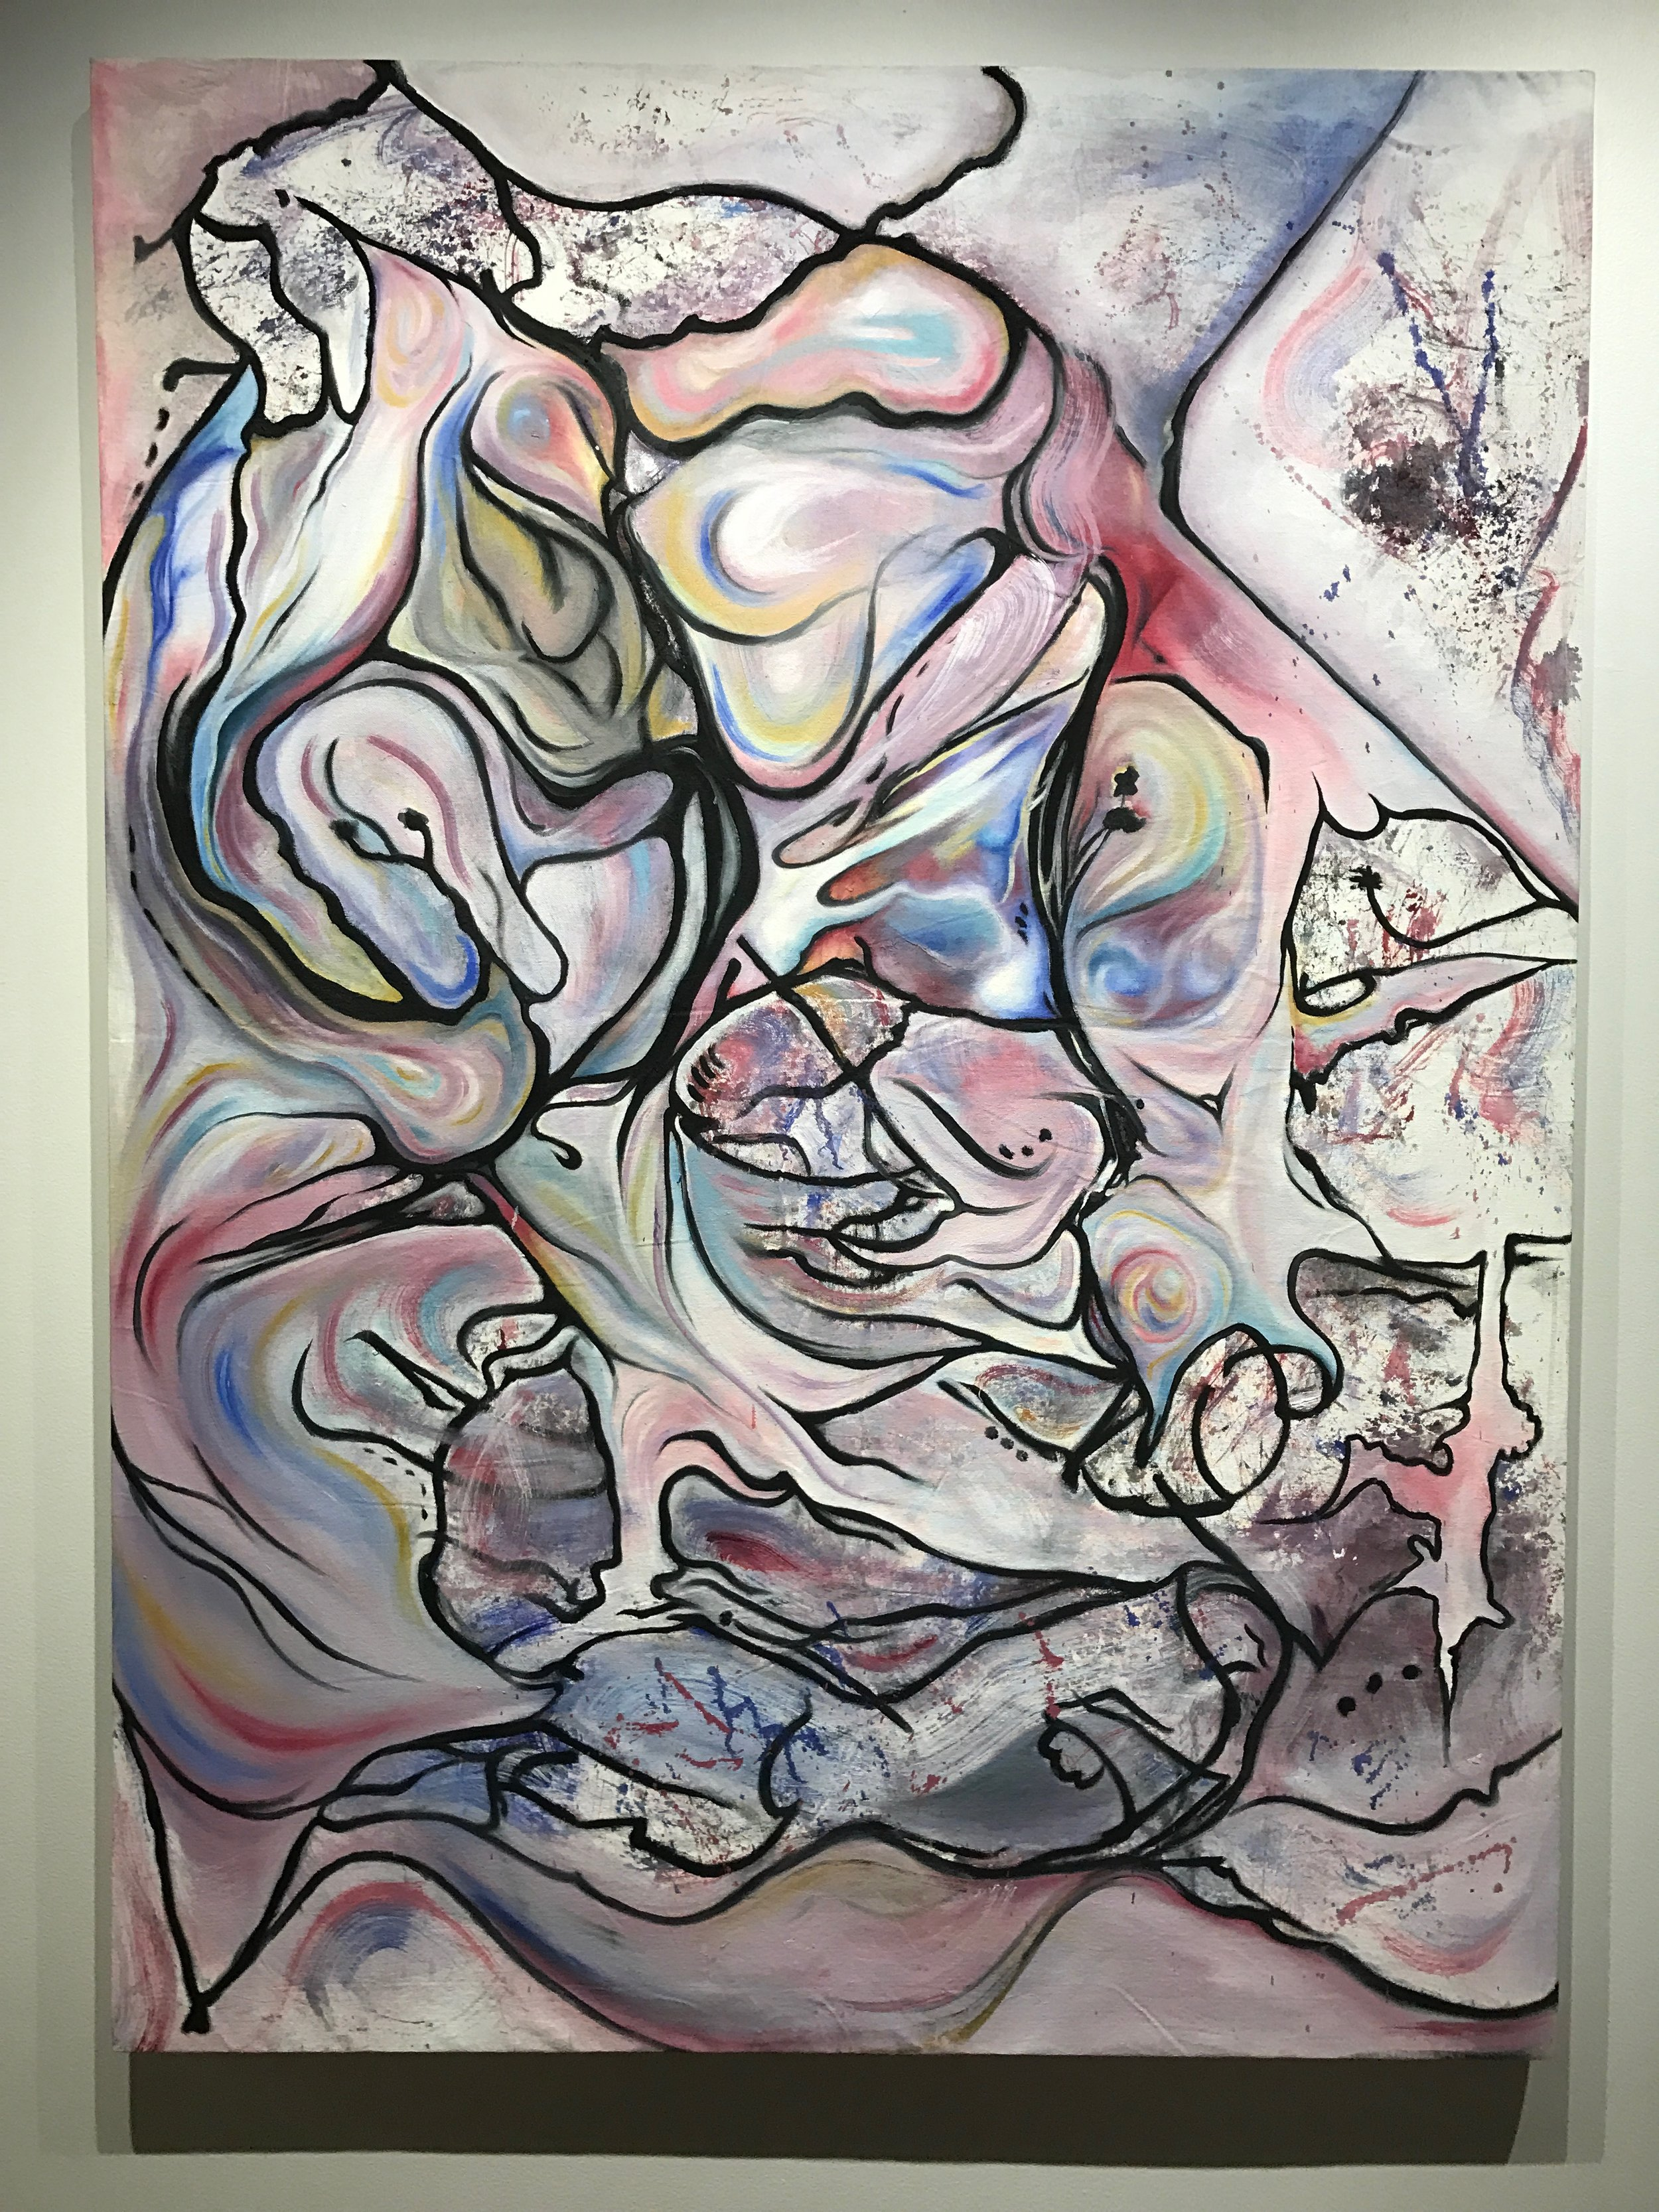 Order on Chaos, 2016  Oil on canvas,46 x 60 in.